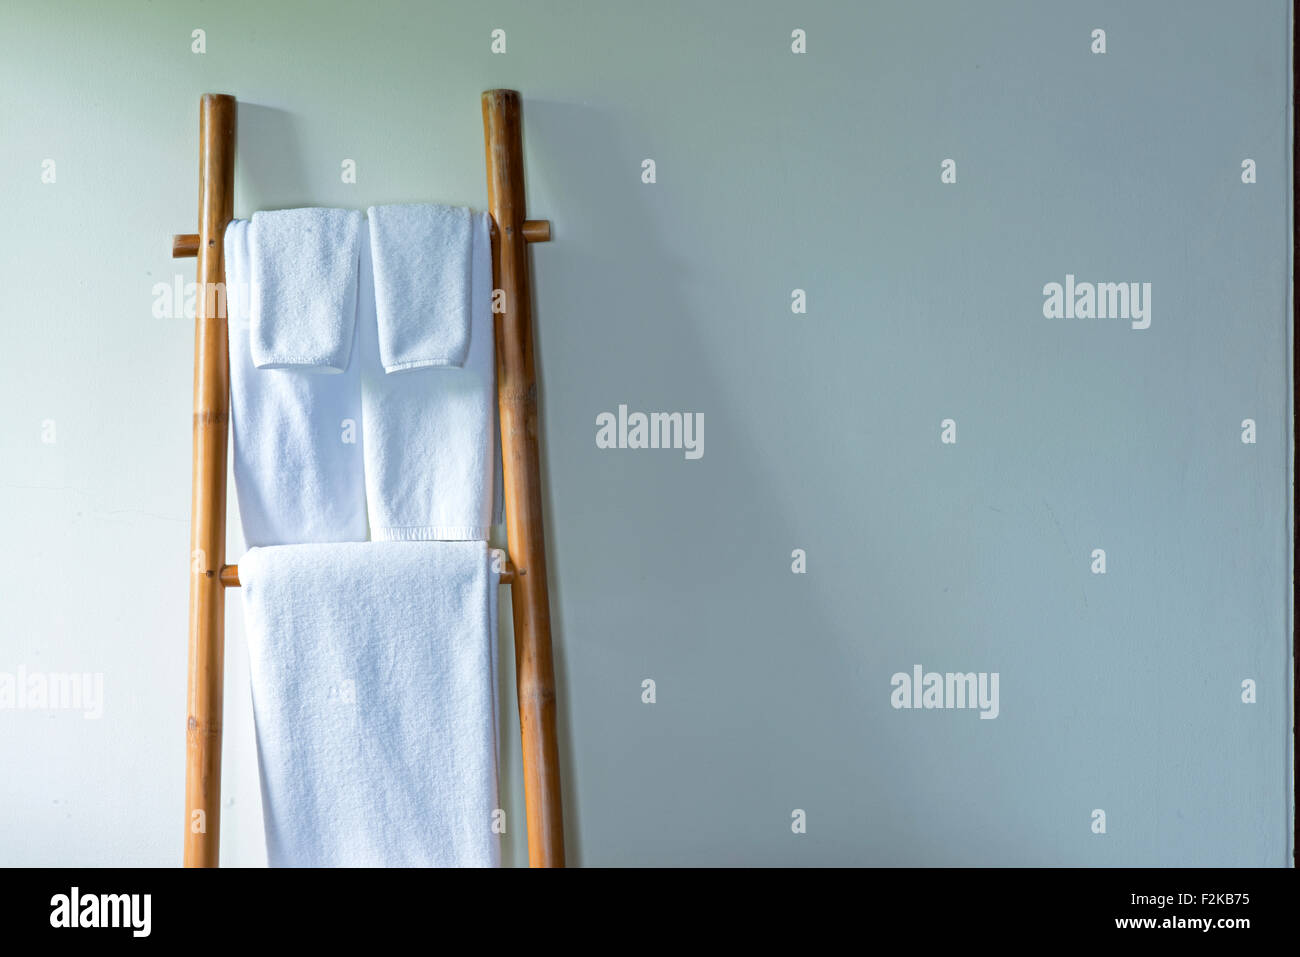 Towels hanging on the bamboo hanger and ready to use Stock Photo